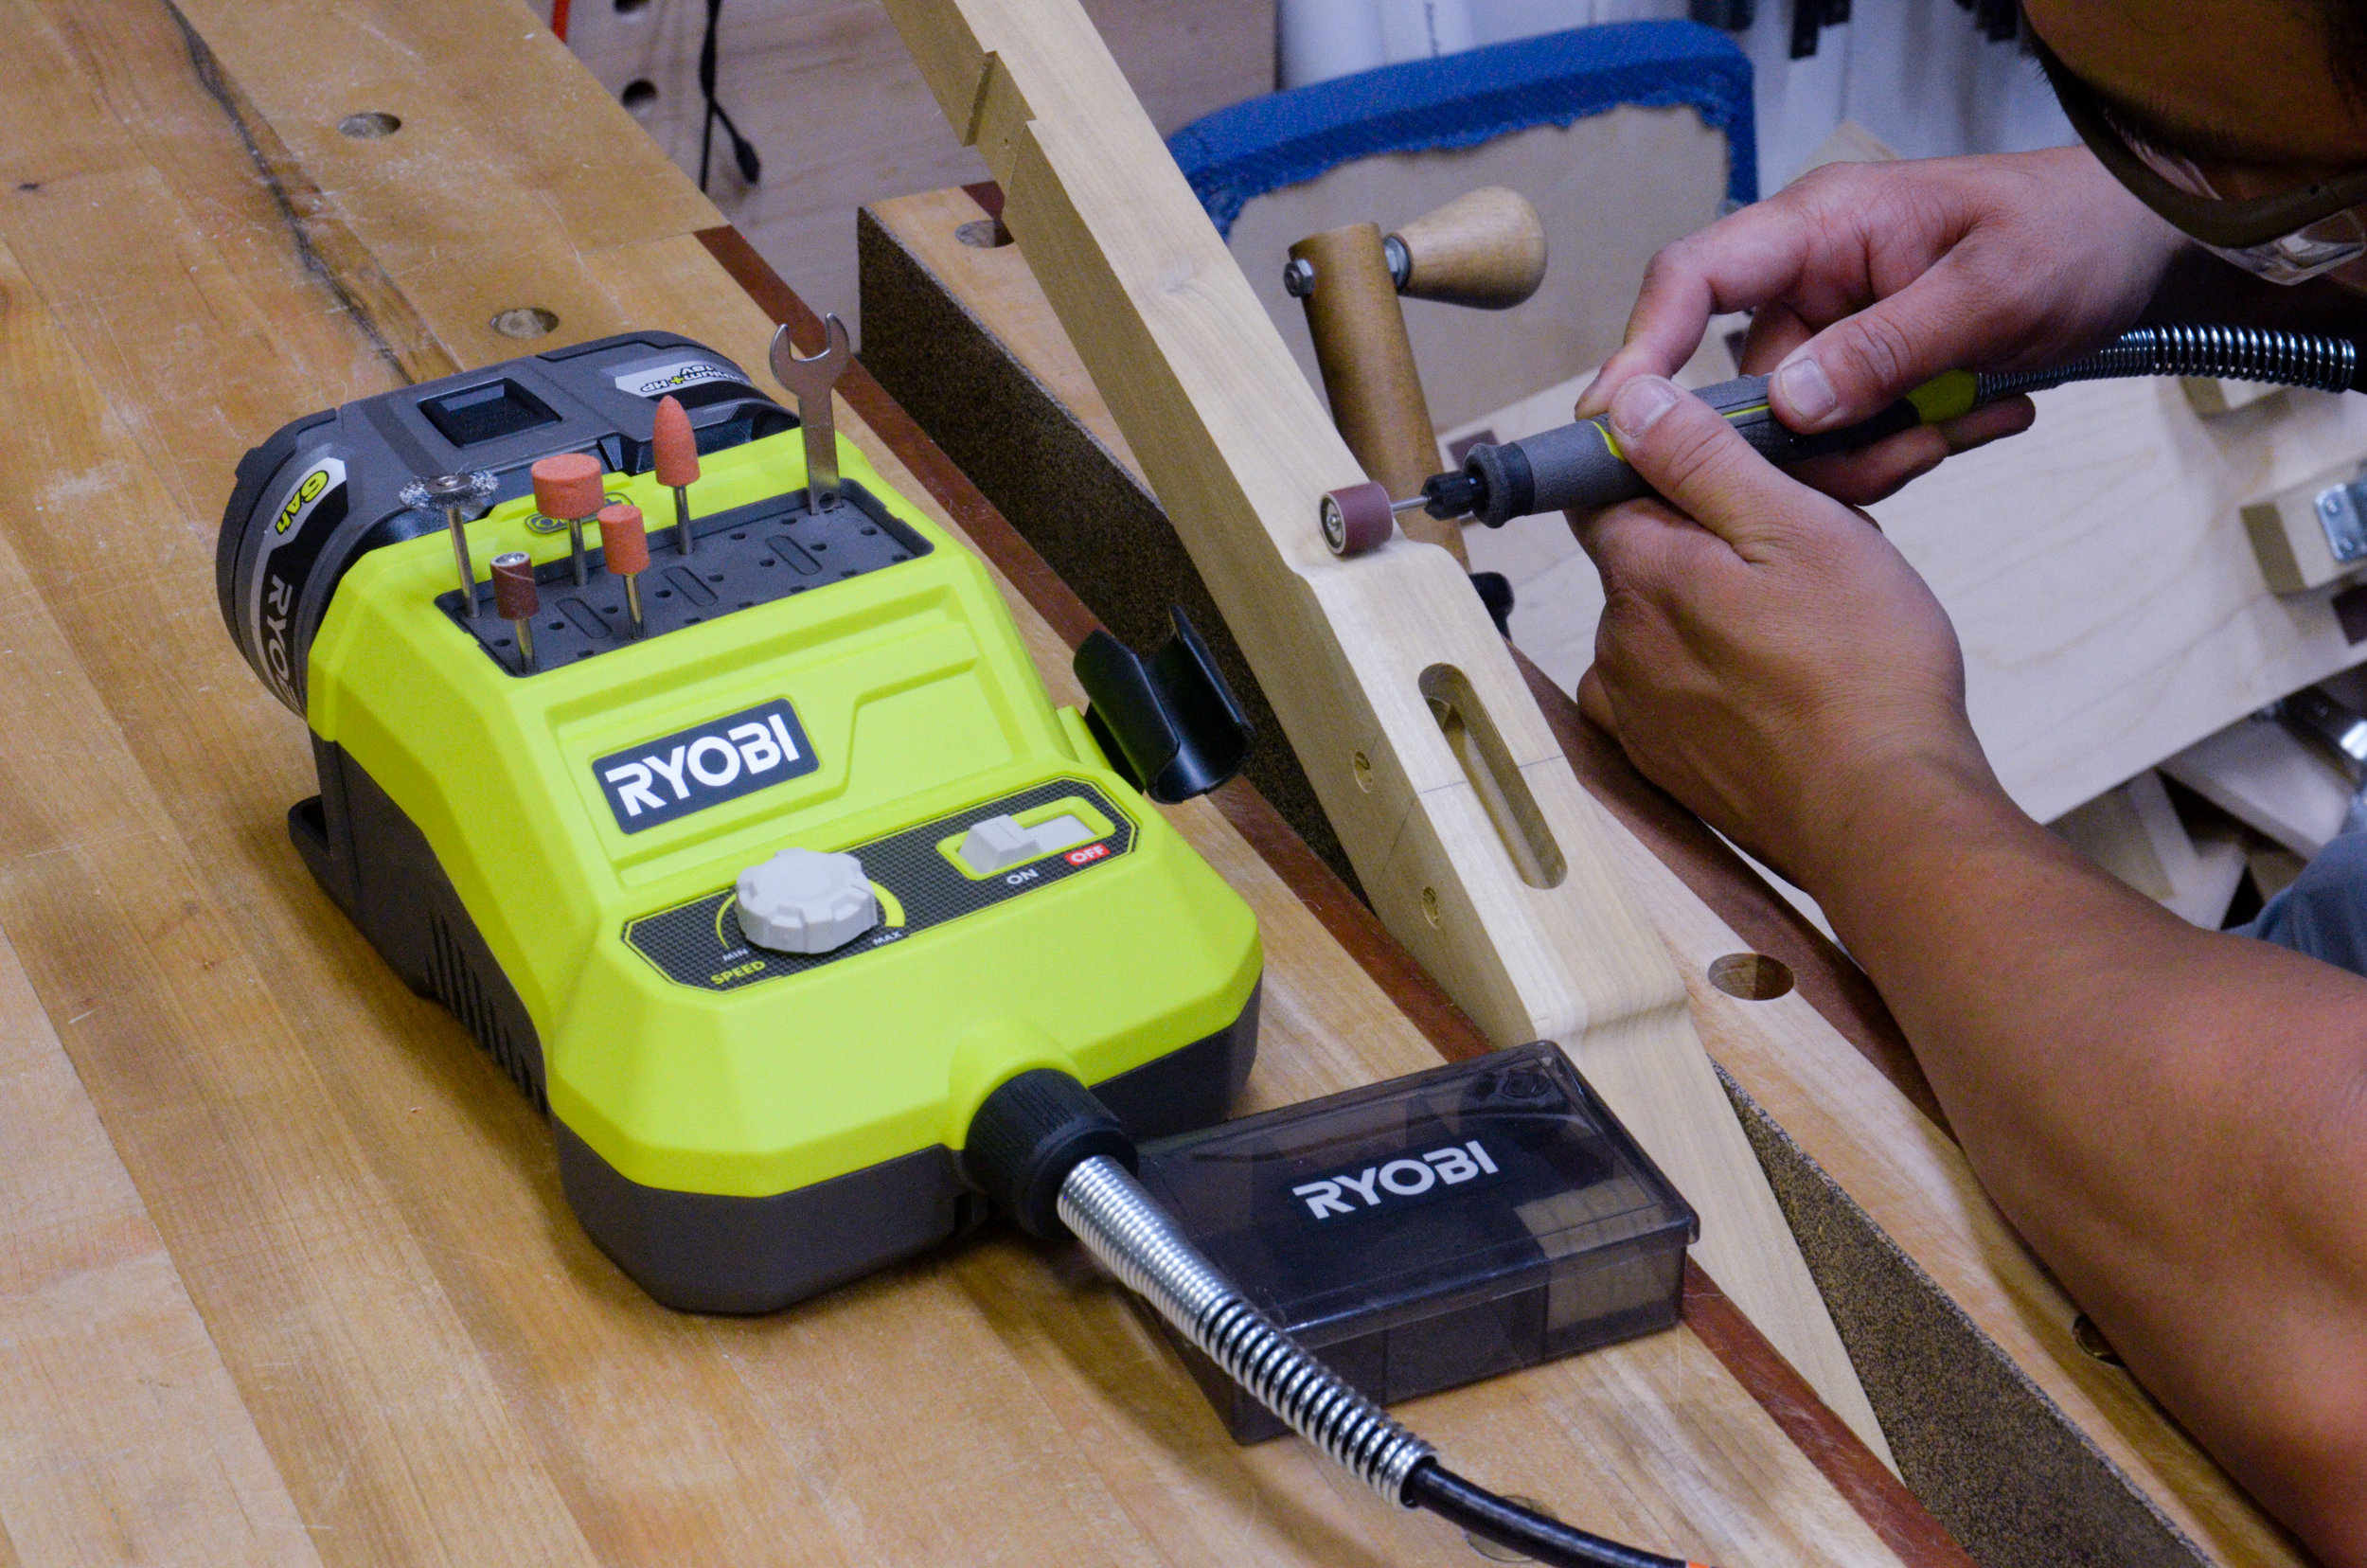 The Ryobi rotary tool would have been perfect to shape some fine detail work on the chairs.